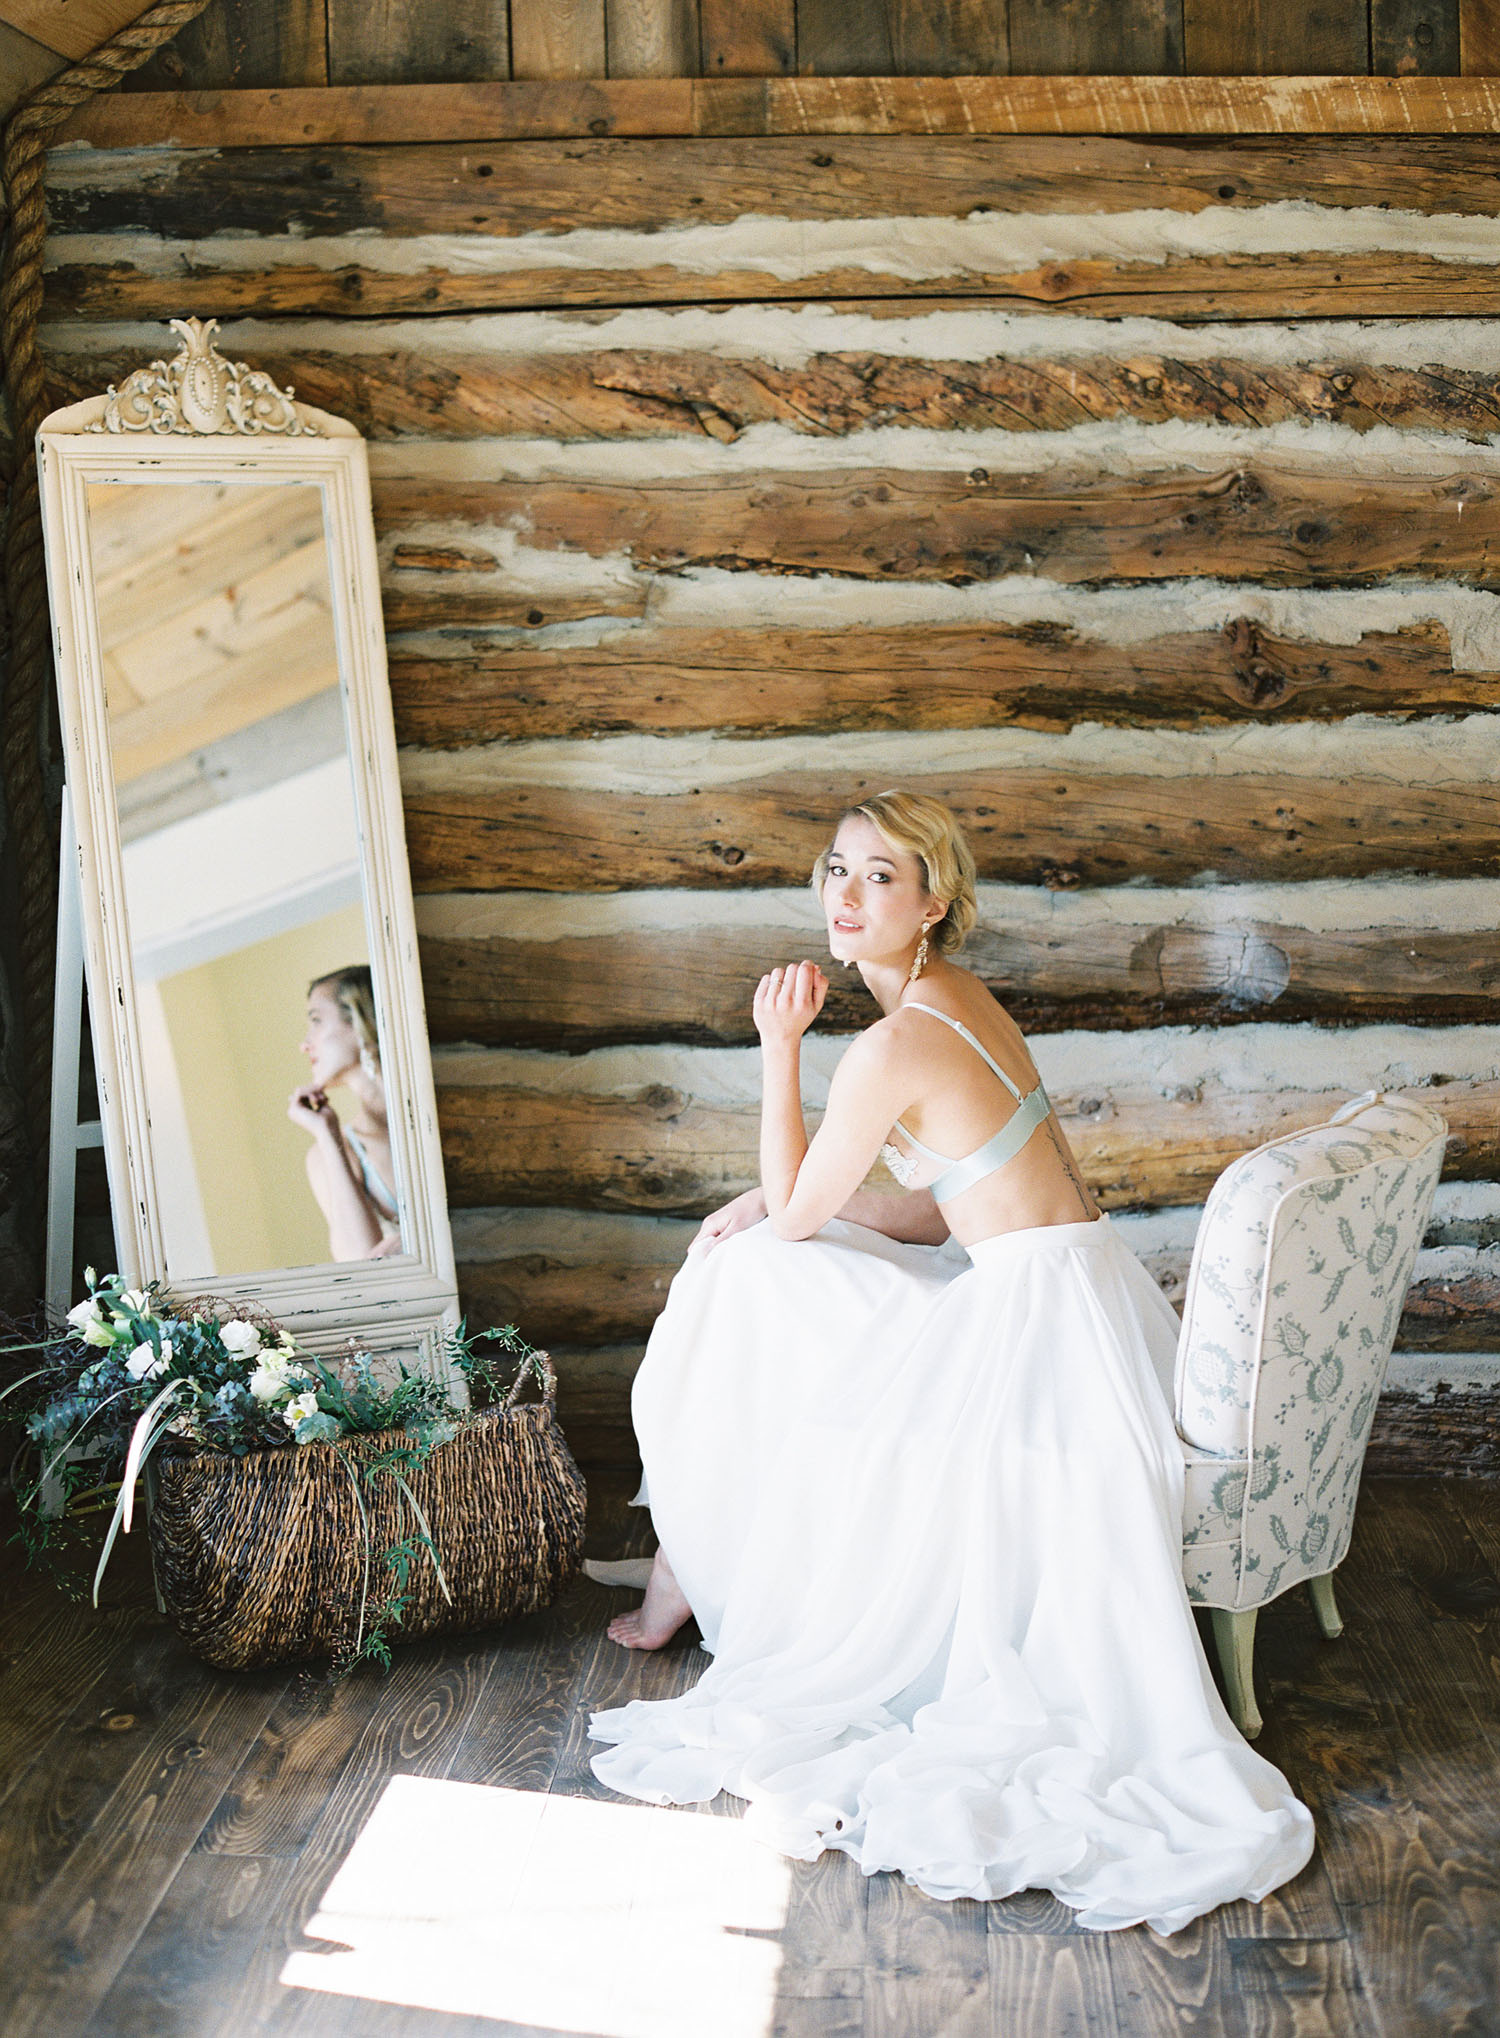 Colorado Wedding Inspiration by The Styled Soiree at Wild Canyon Ranch | Colorado Wedding Planner | Photo: Carrie King